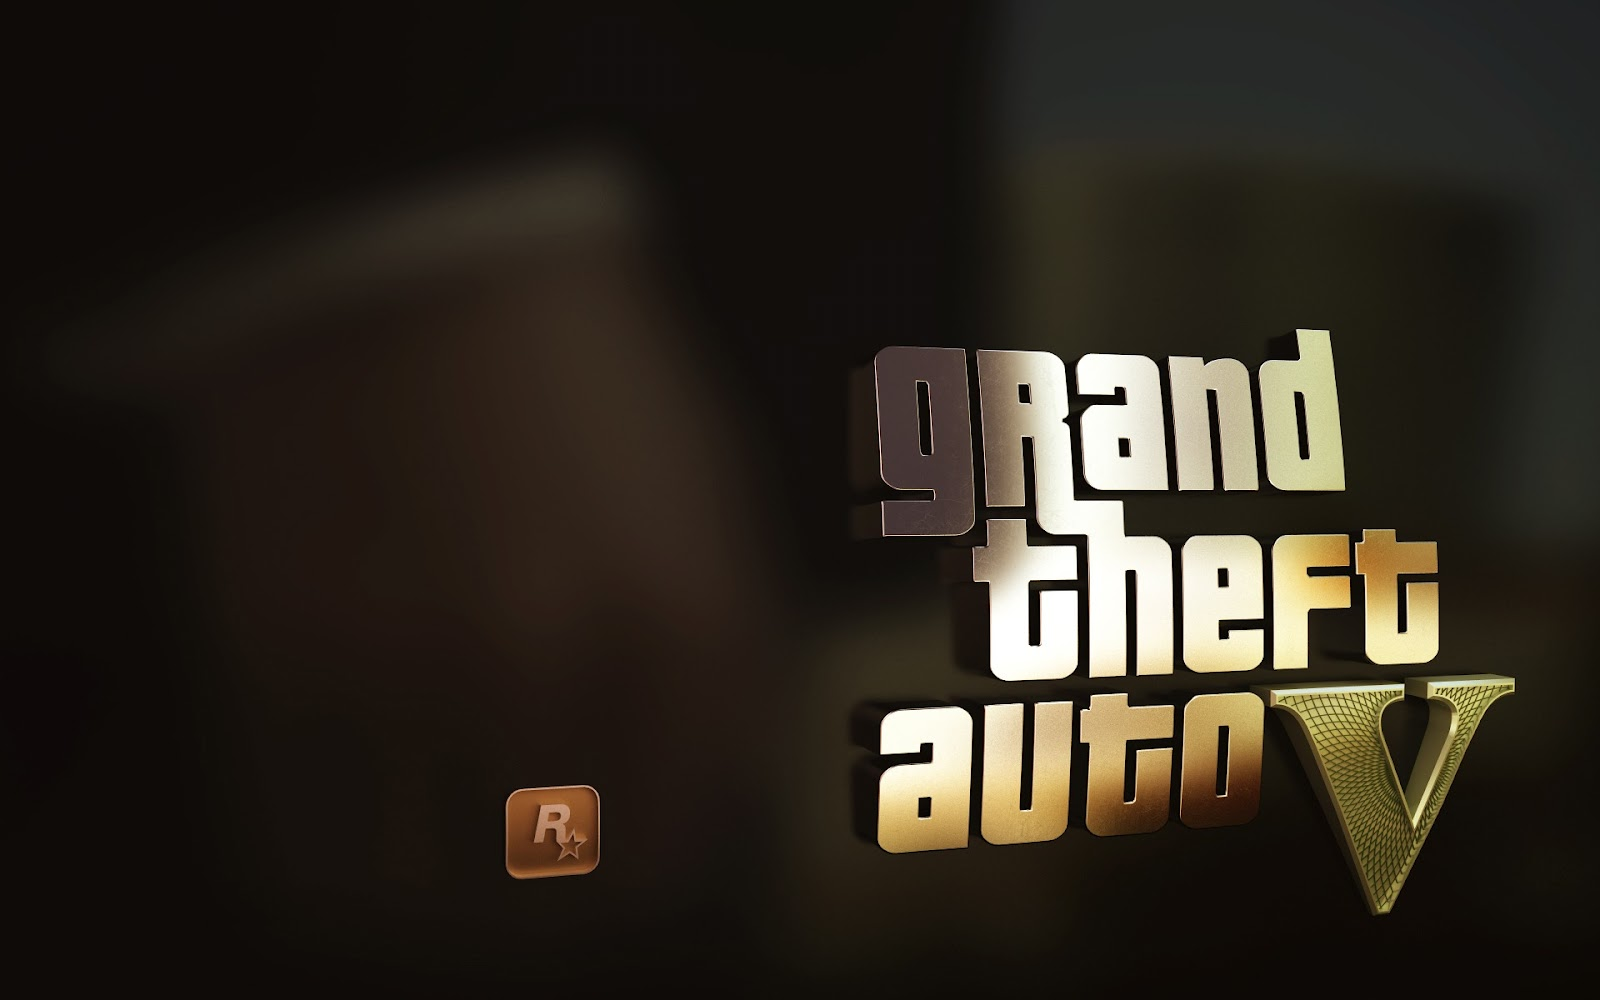 grand theft auto v logo hd wallpapers download hd video game